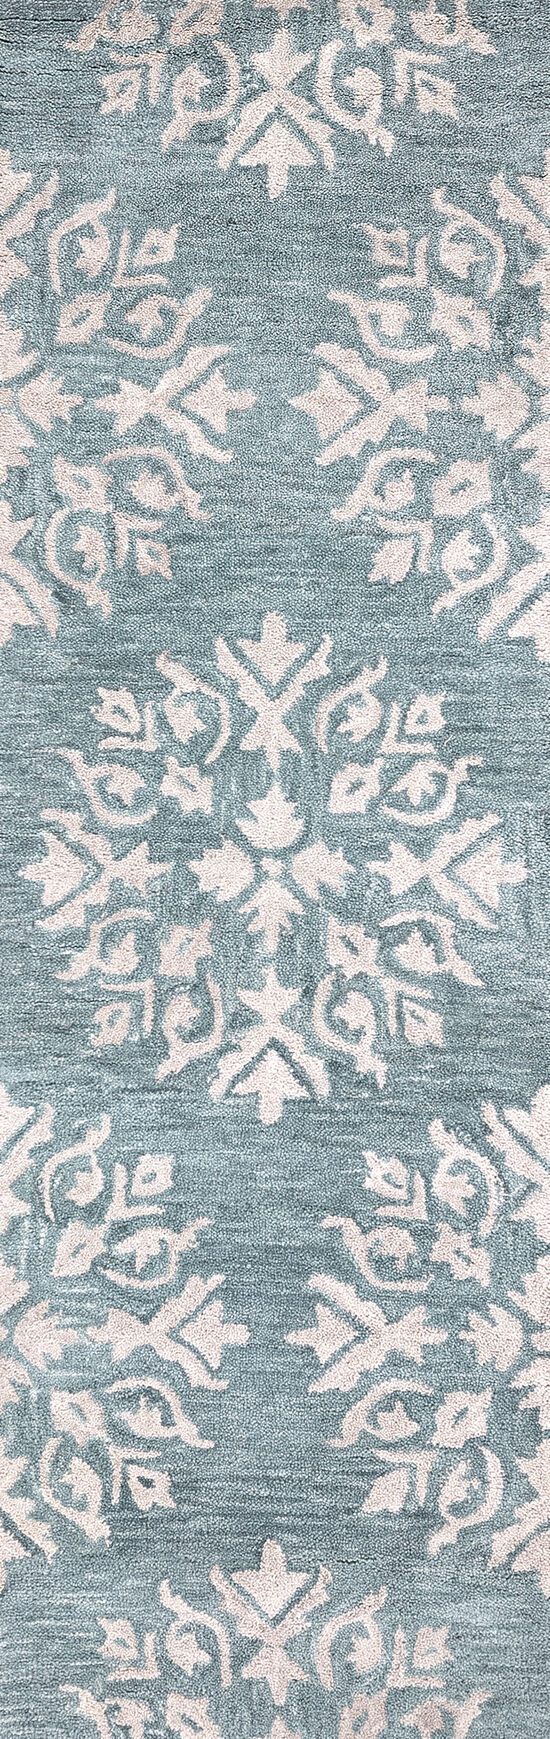 Transitional Hand-Tufted 9' x 12' Rectangle Rug in Aqua / Blue